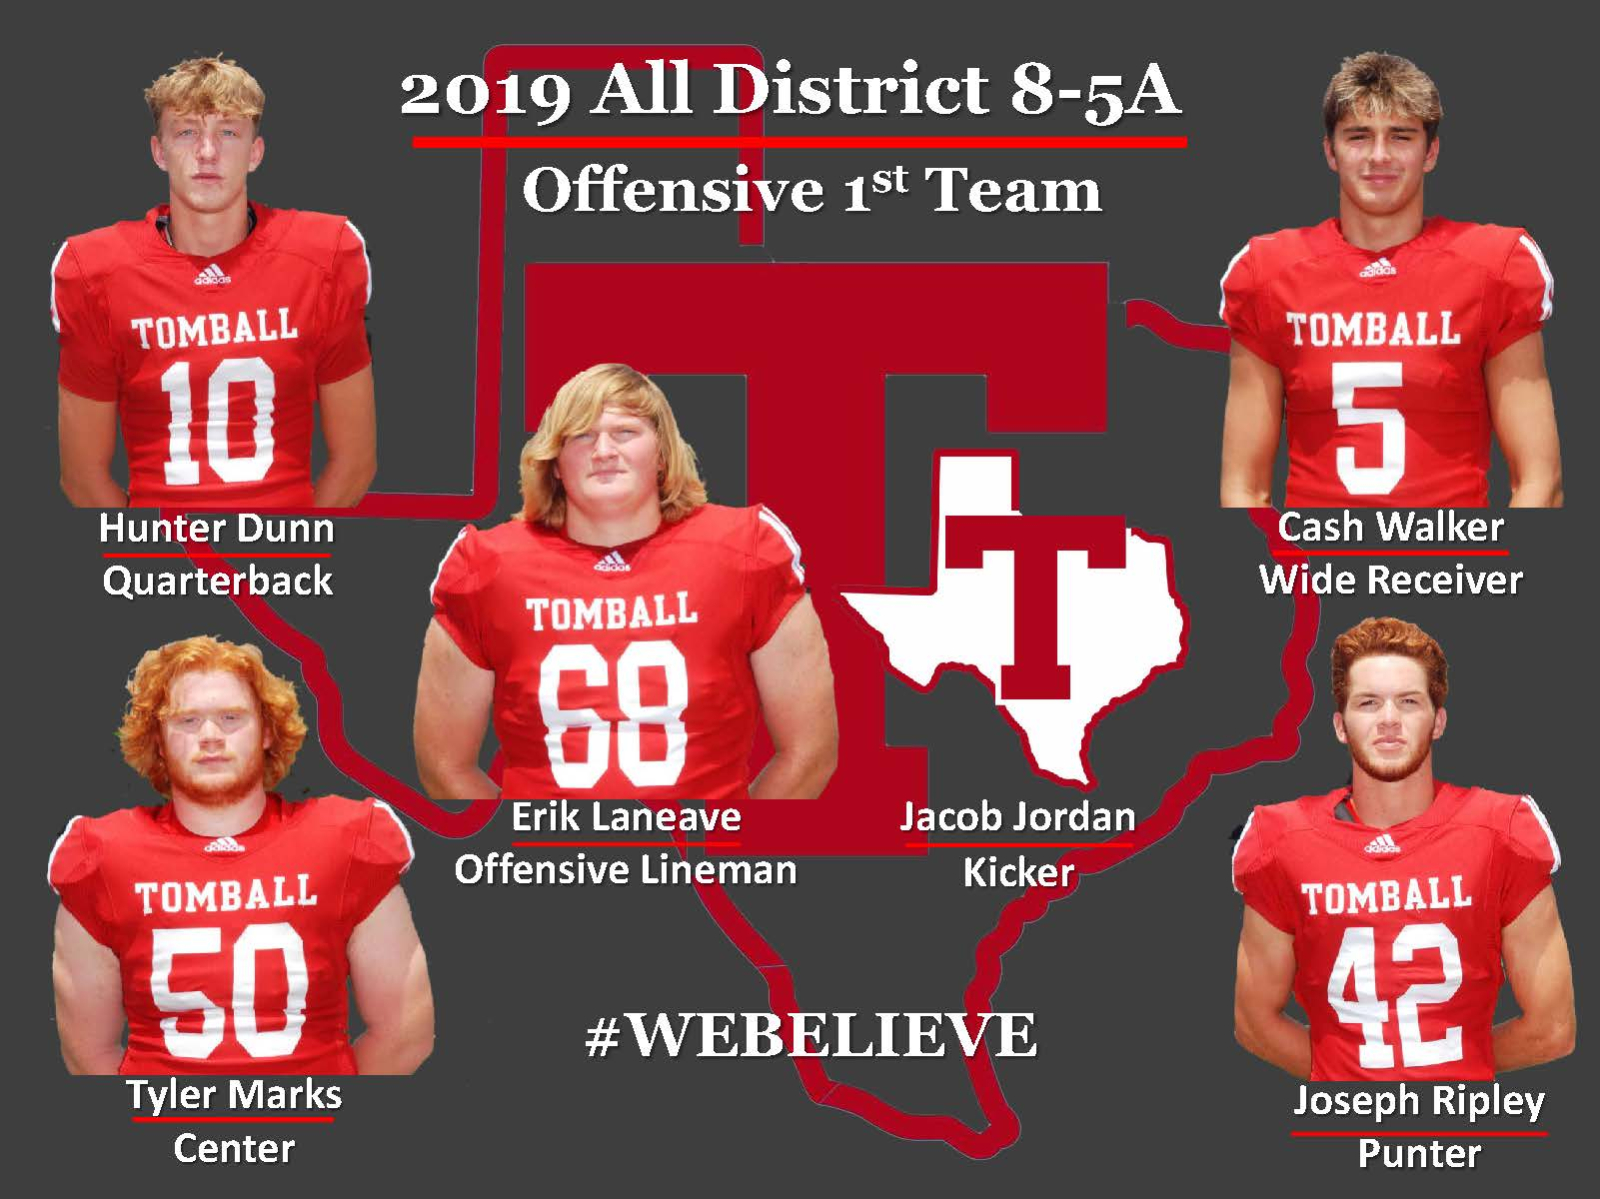 2019 All District 8-5A – Offensive 1st Team!